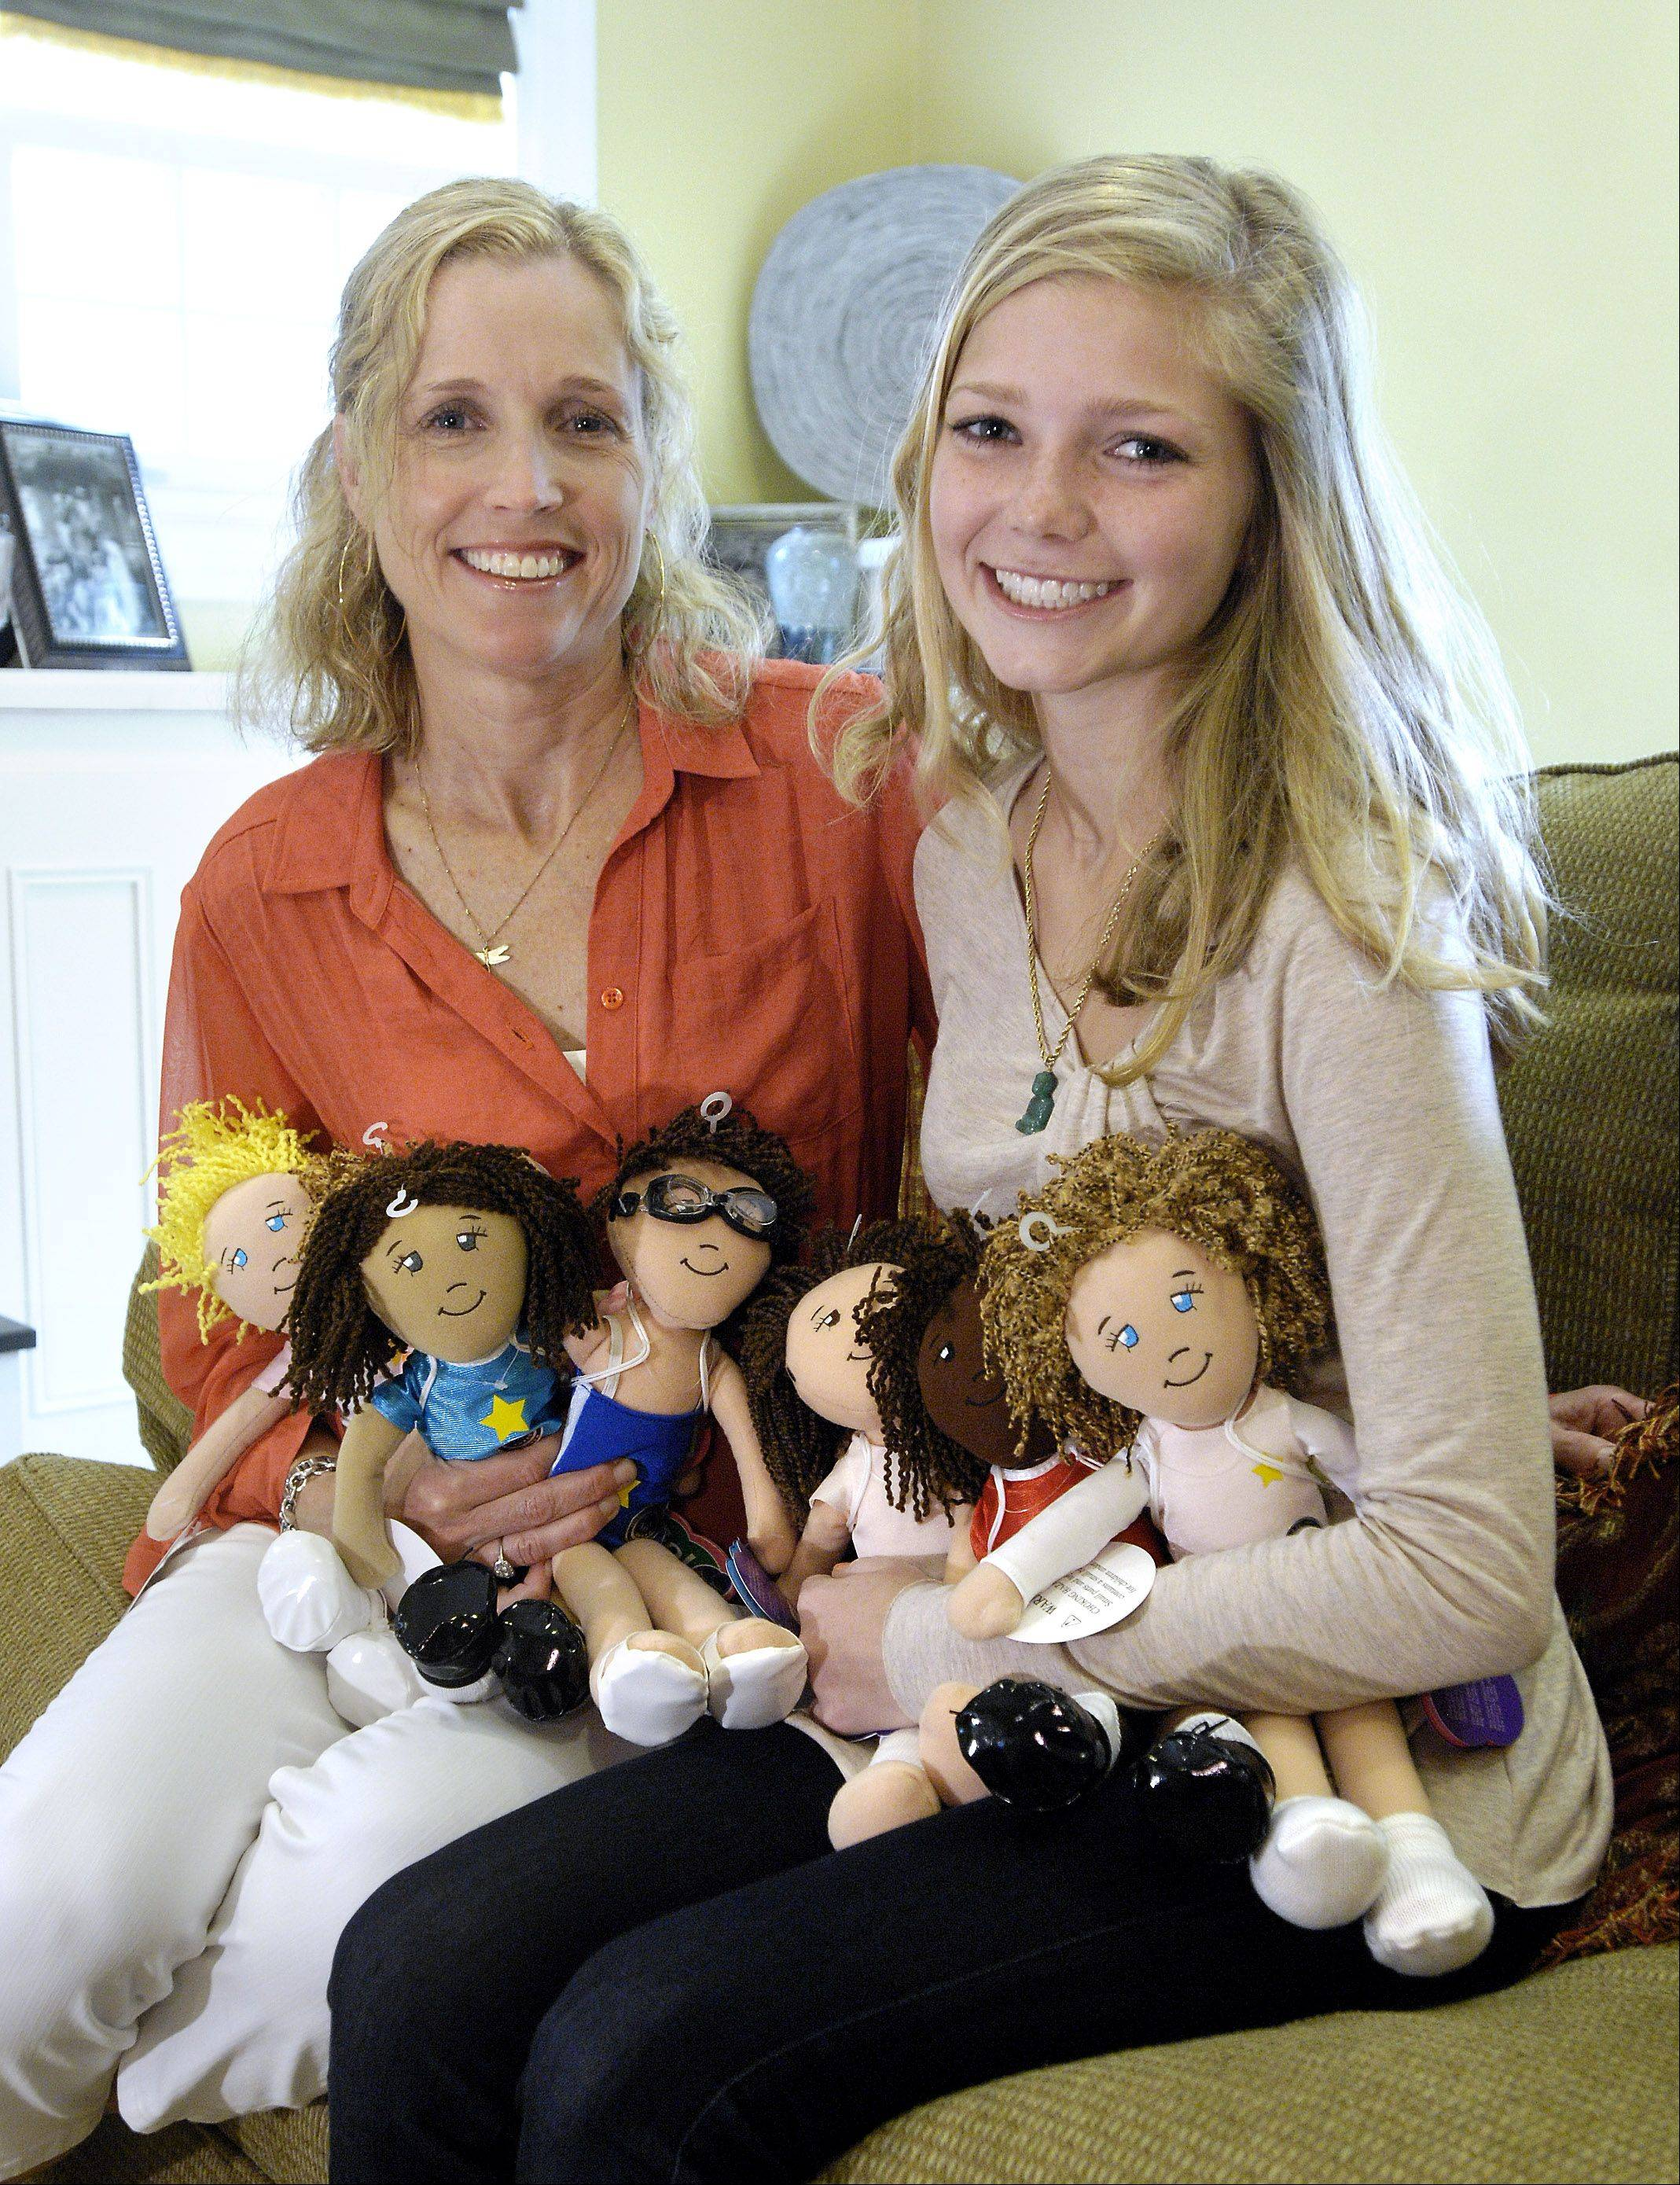 Jodi Norgaard of Glen Ellyn is the creator of sports themed plush dolls called Go! Go! Sports Girls that are intended to promote a healthy self-image for girls. Her daughter, Grace, now 15, served as a consultant when her mom started designing the dolls six years ago.